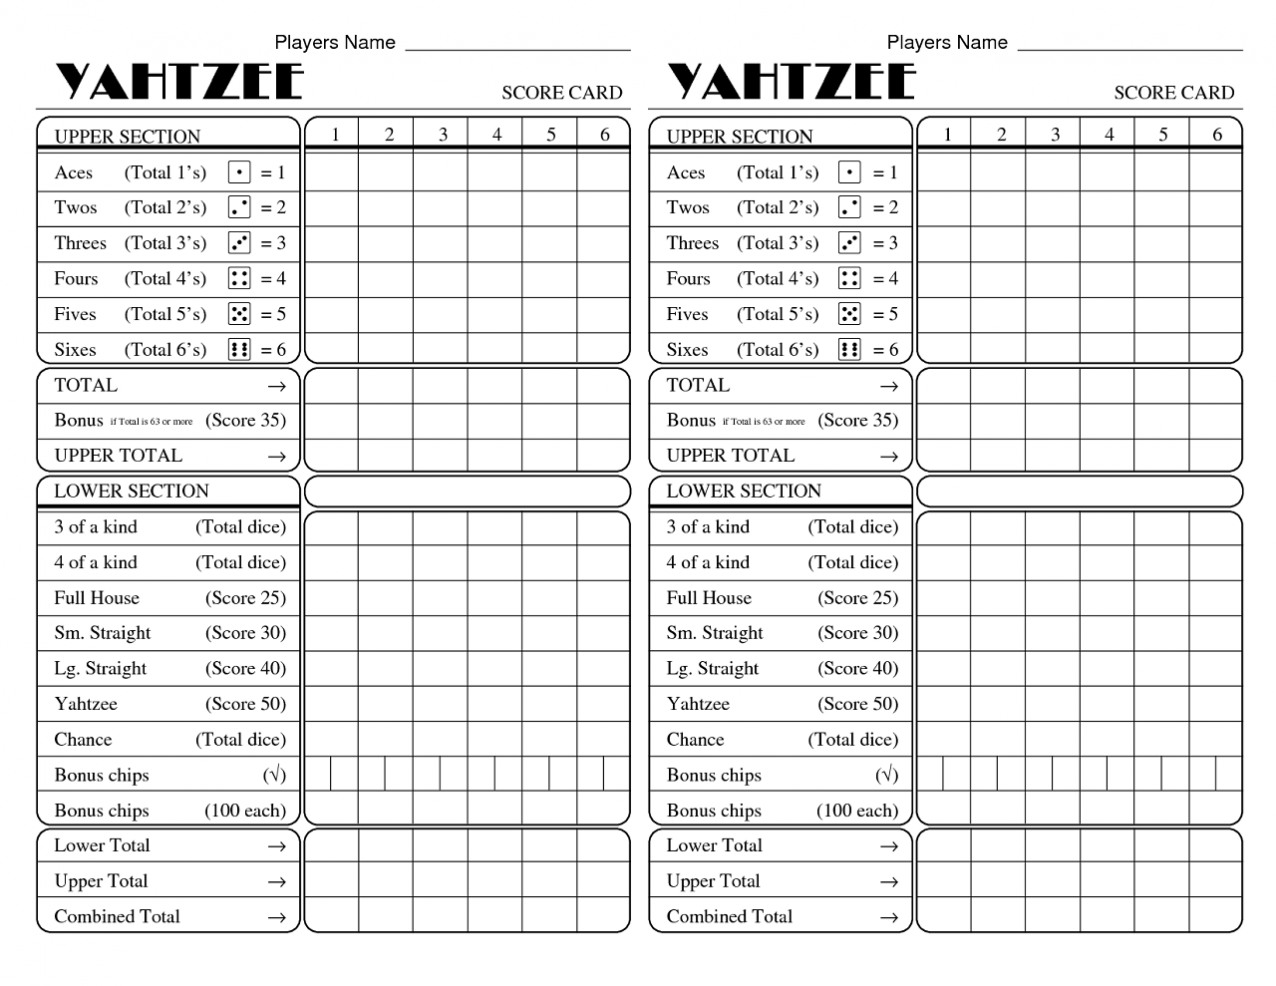 photo regarding Printable Yahtzee Score Sheets Pdf identified as yahtzee ranking card pdf